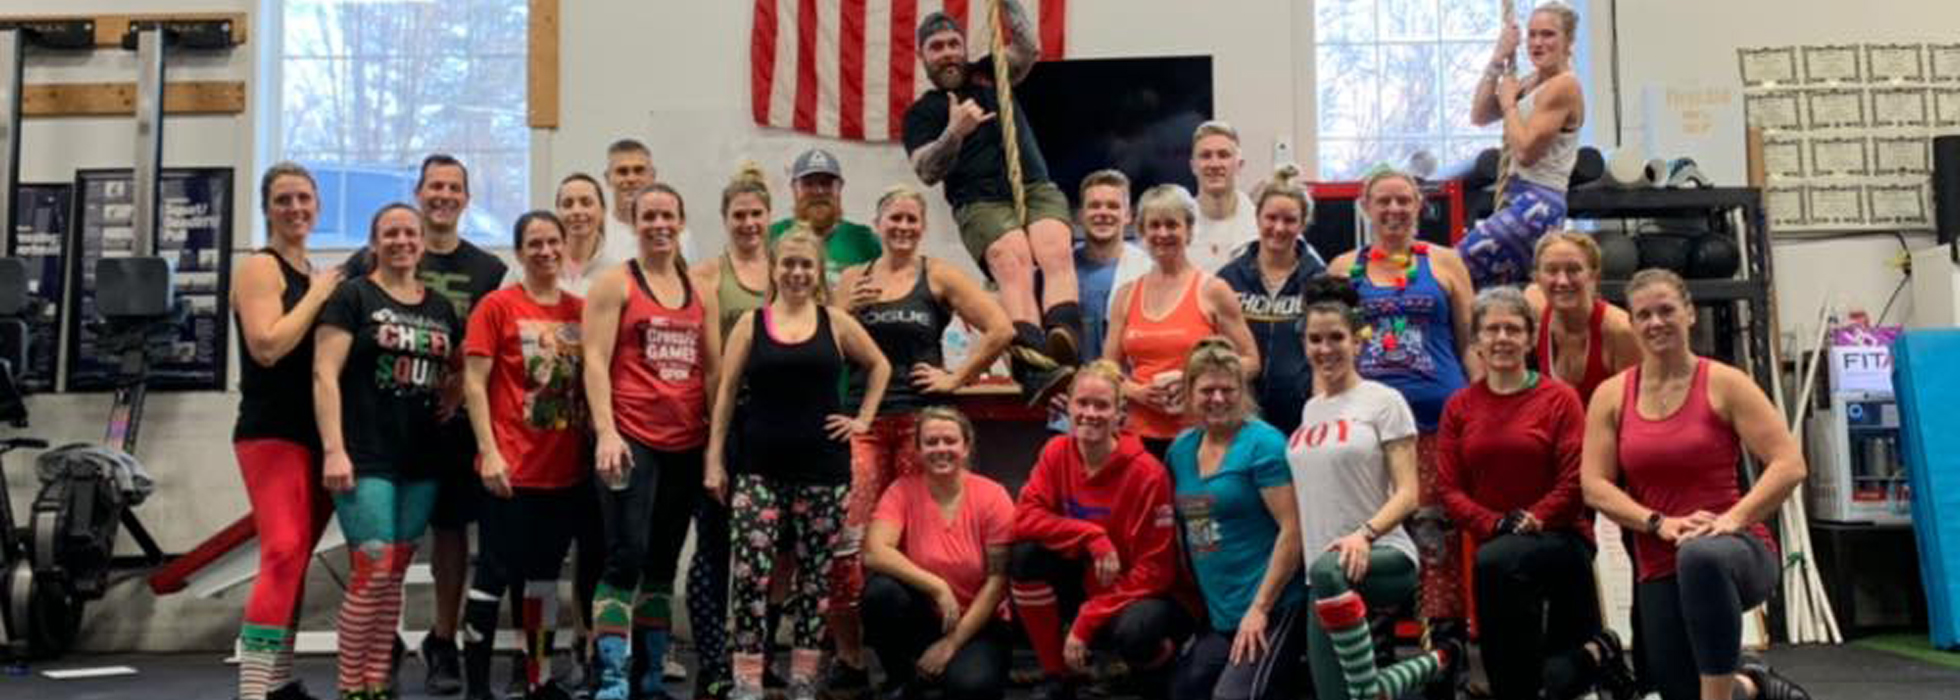 CrossFit Classes in Colora MD, CrossFit Classes near Rising Sun MD, CrossFit Classes near Perryville MD, CrossFit Classes near Oxford MD